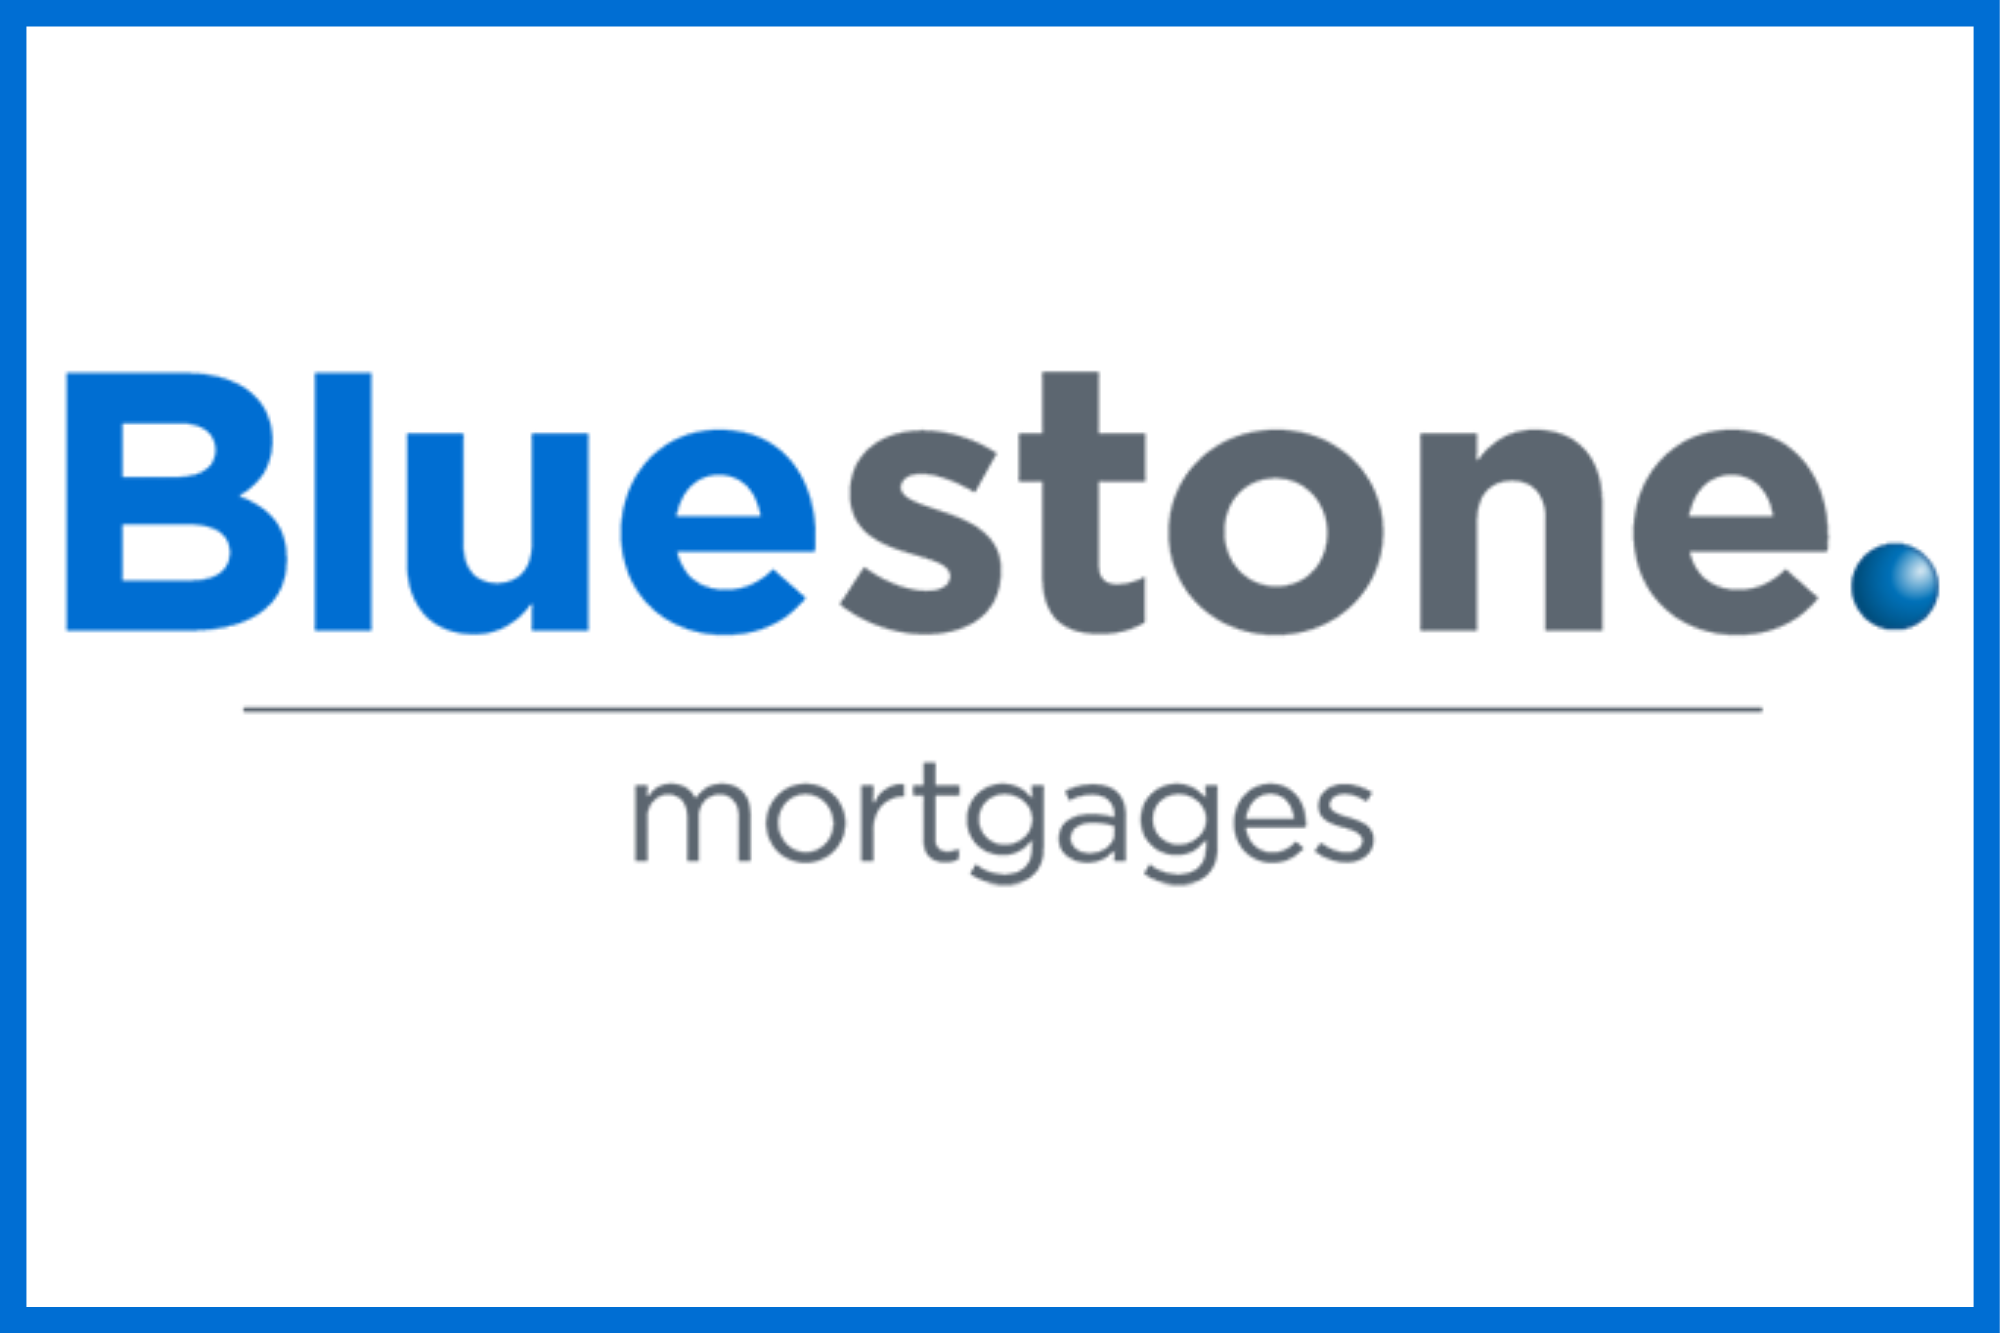 Blue Stone Mortgages